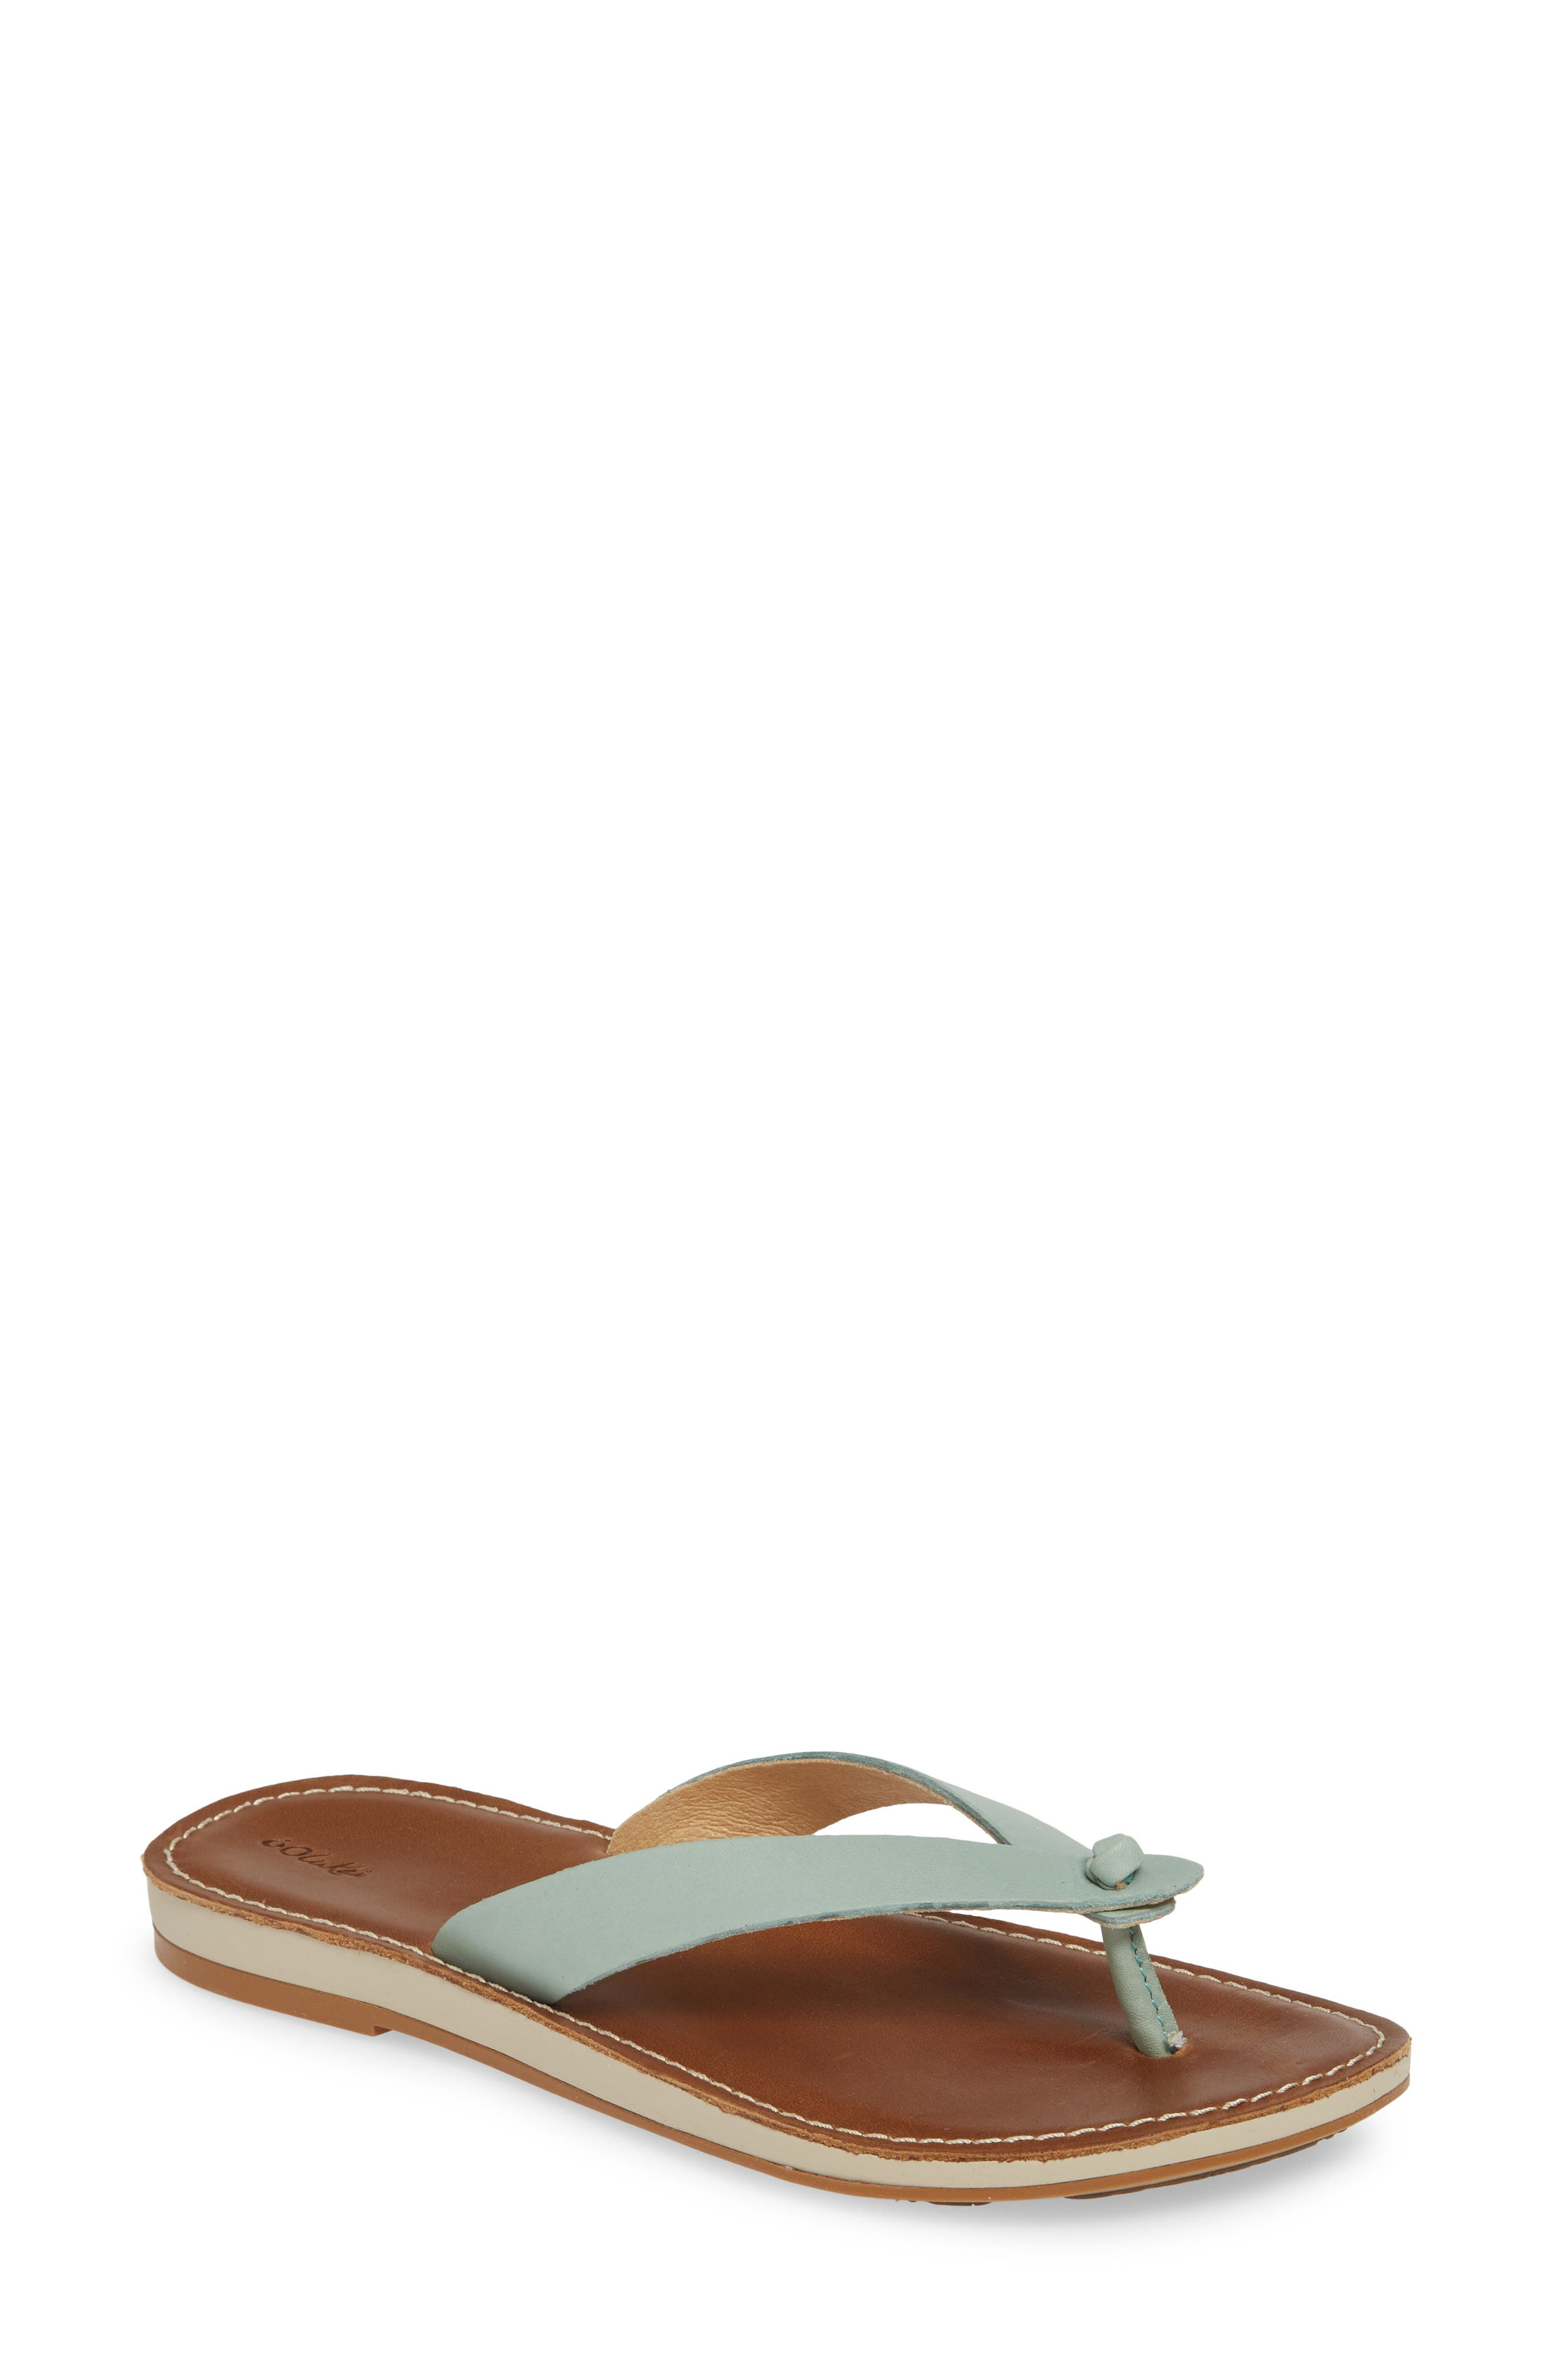 Full-grain leather straps add timeless refinement and sophistication to a minimalist flip-flop, while the anatomical insole provides all-day comfort and support. Style Name: Olukai Nohie Flip Flop (Women). Style Number: 5792990. Available in stores.